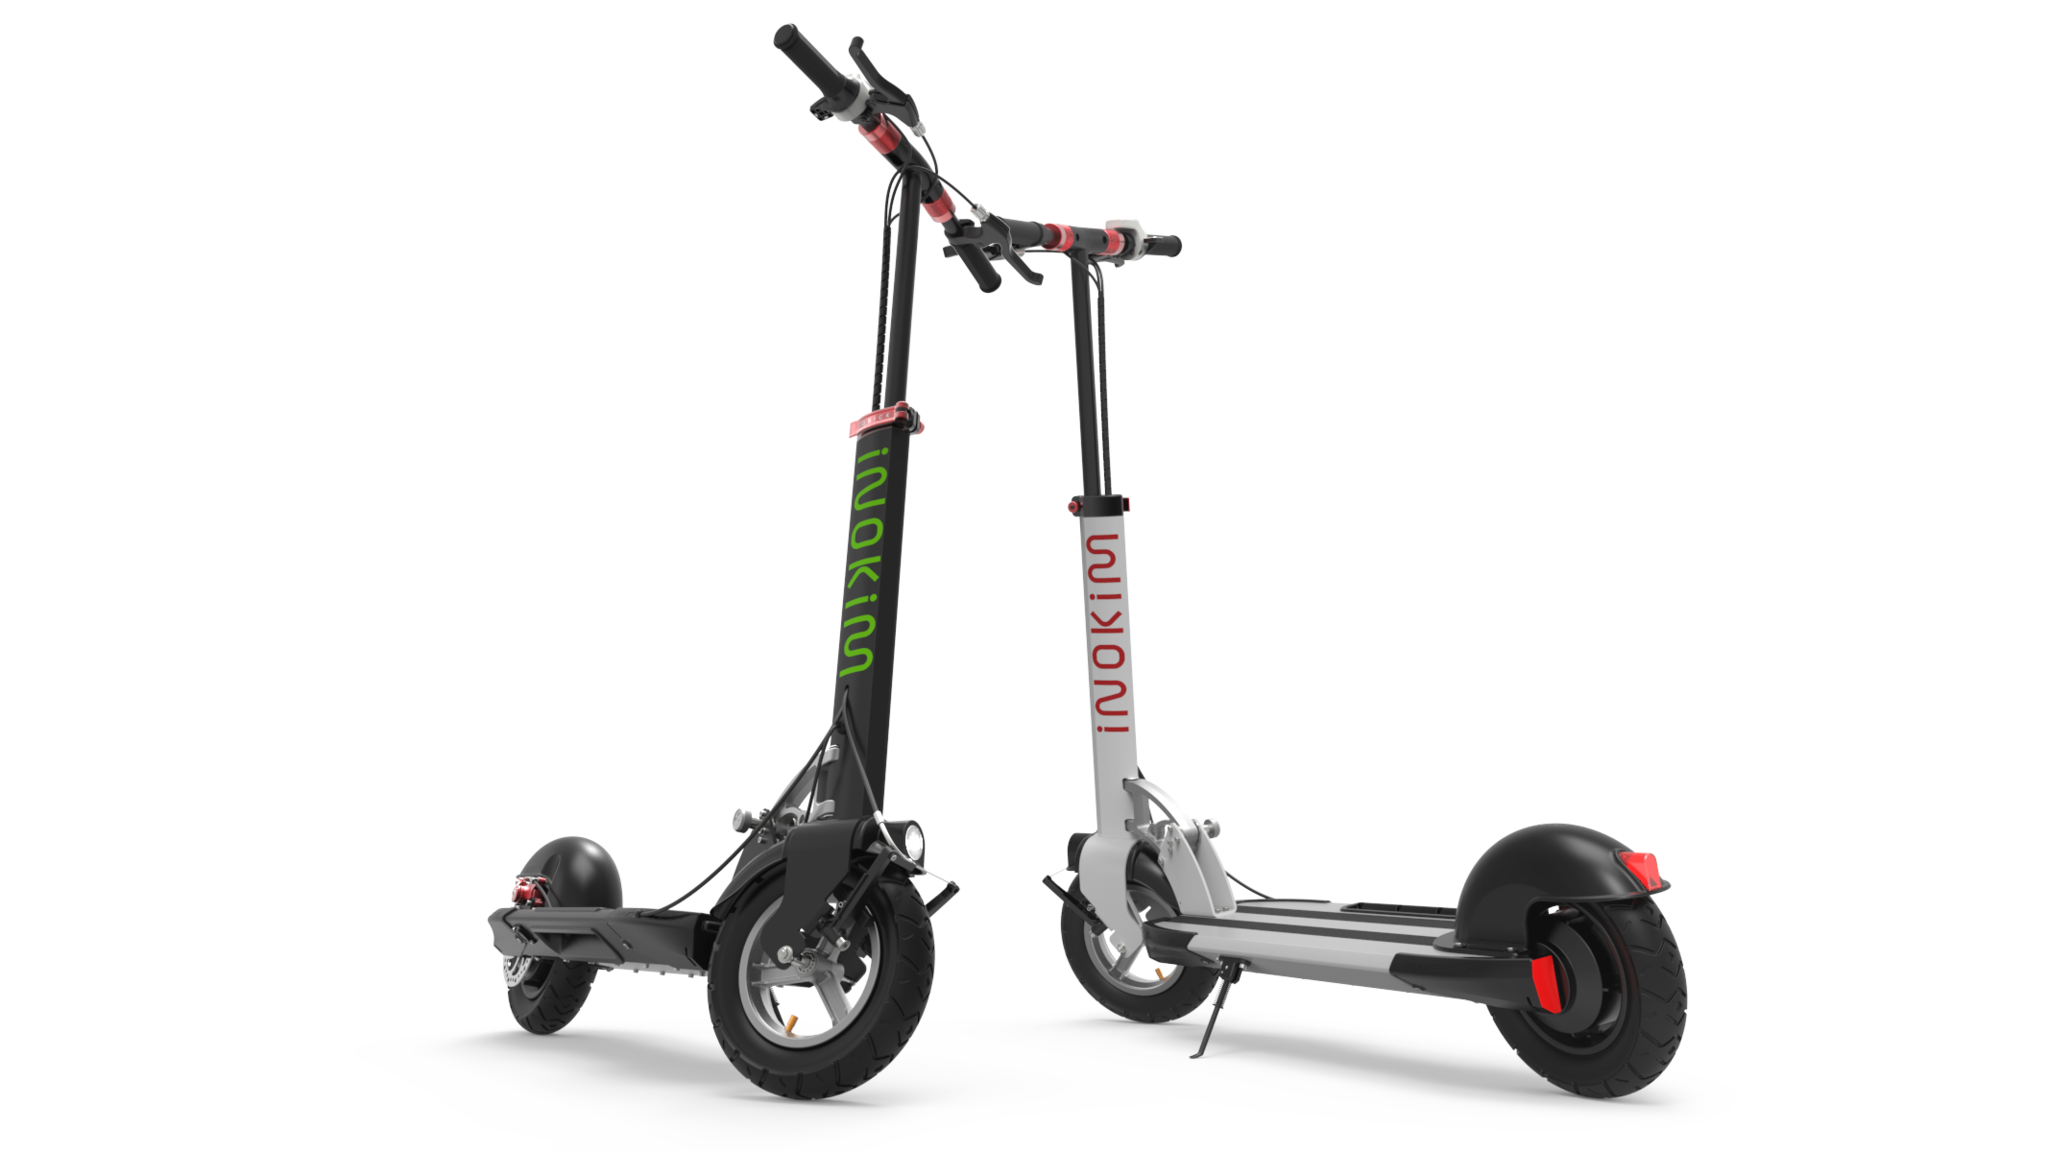 this latest and greatest electric scooter is now available